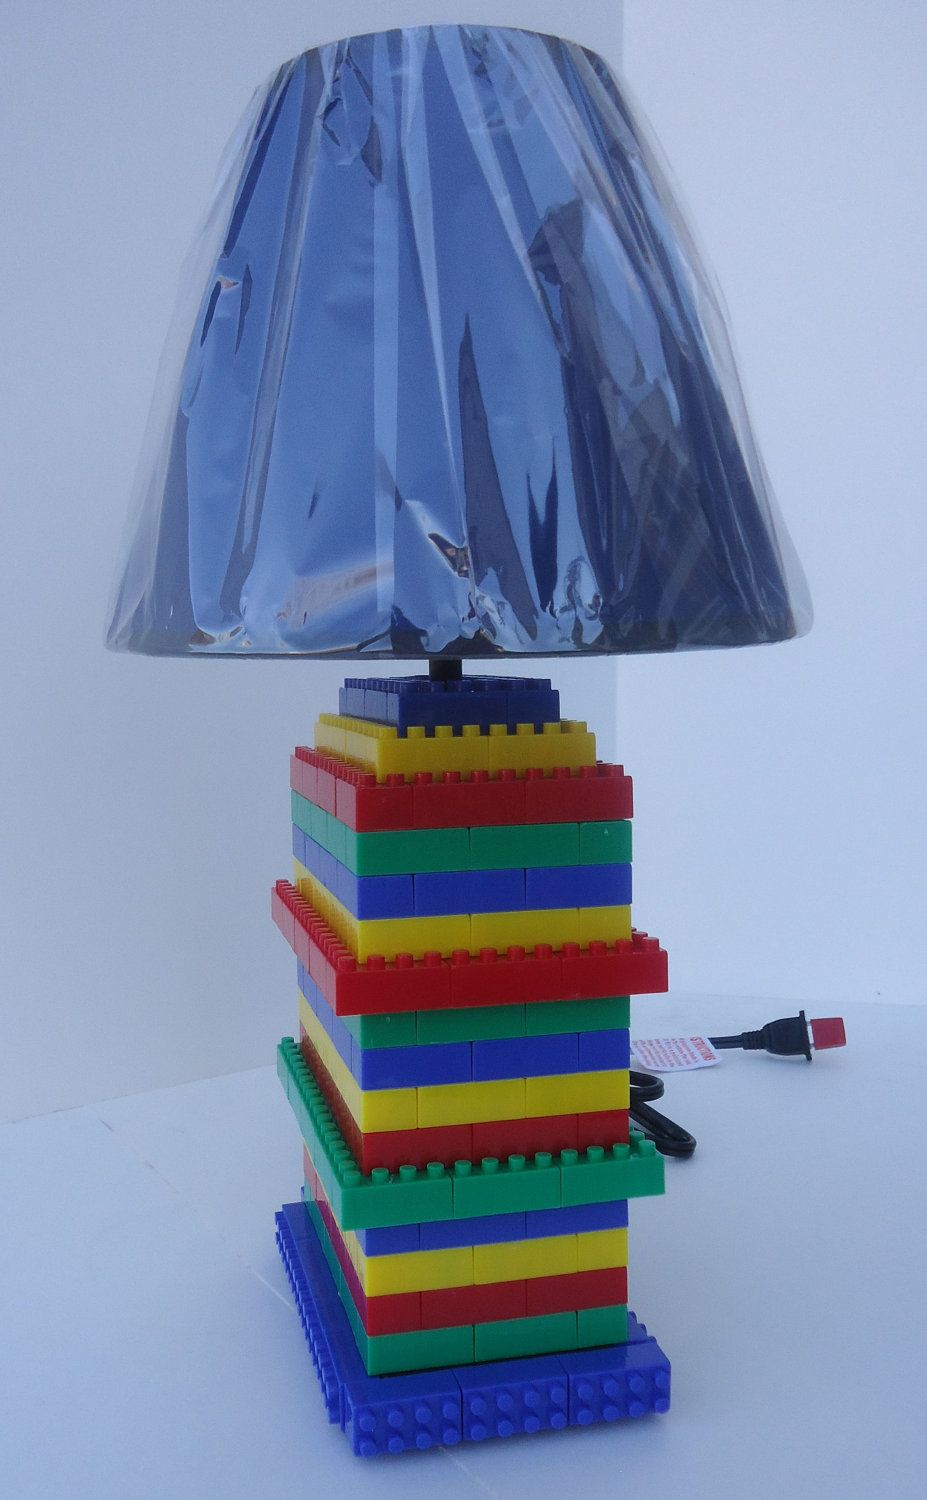 Room 2 Build Bedroom Kids Lego: LEGO Inspired Lamp With Shade, Great Lighting For Bedroom